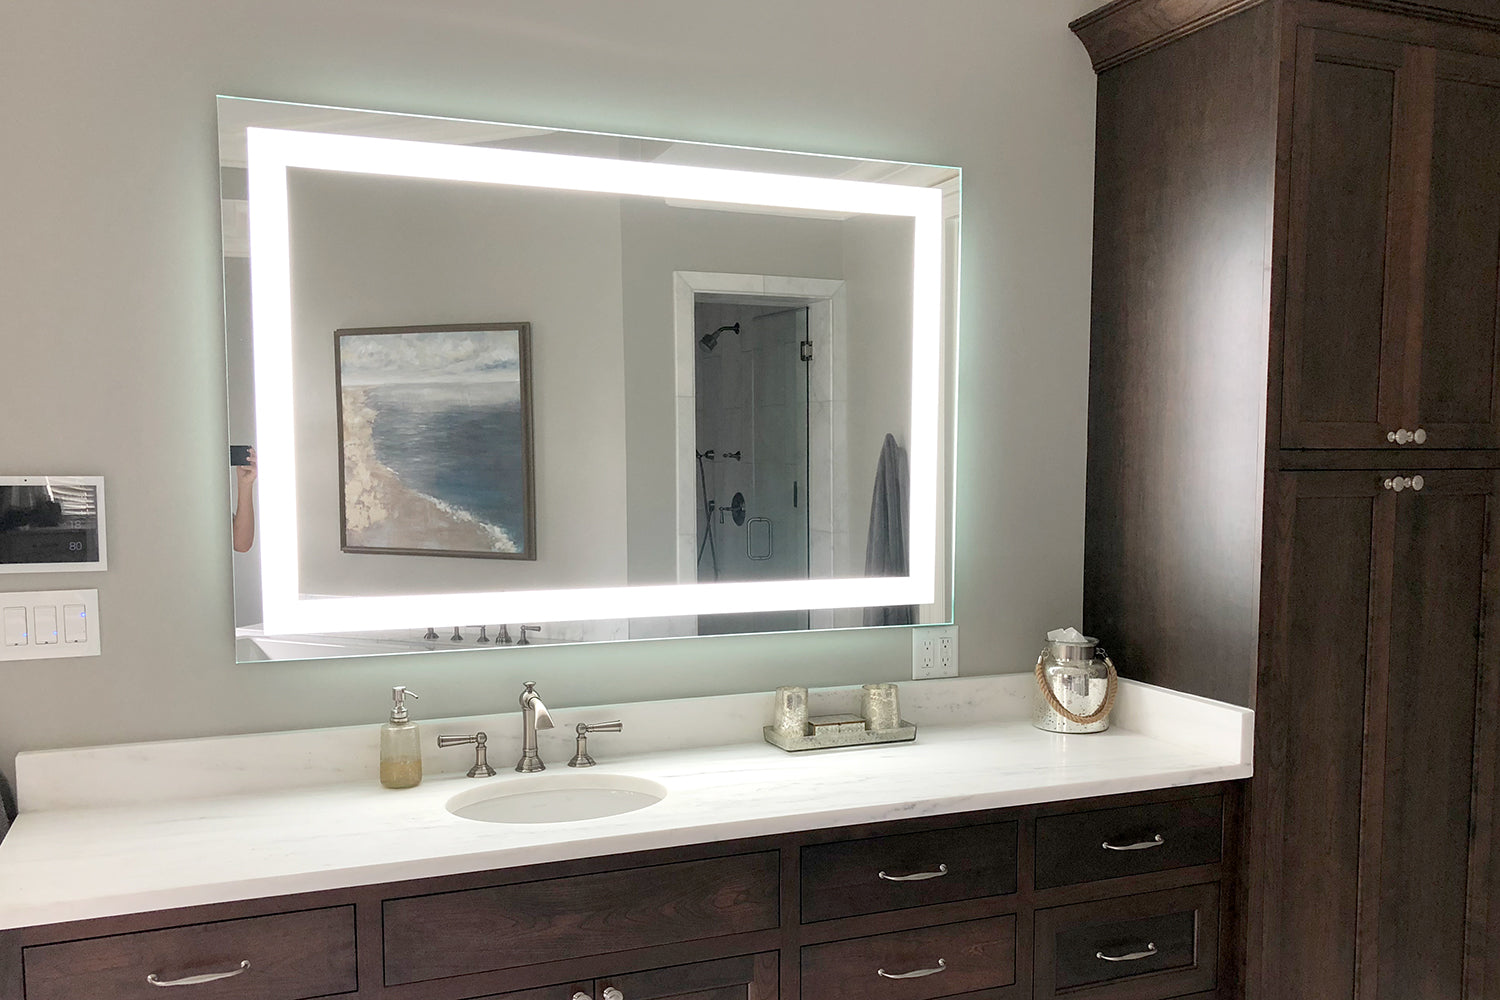 "Modern Led Mirror Front Make Up Bathroom Vanity Light Wall: Front-Lighted LED Bathroom Vanity Mirror: 60"" X 40"